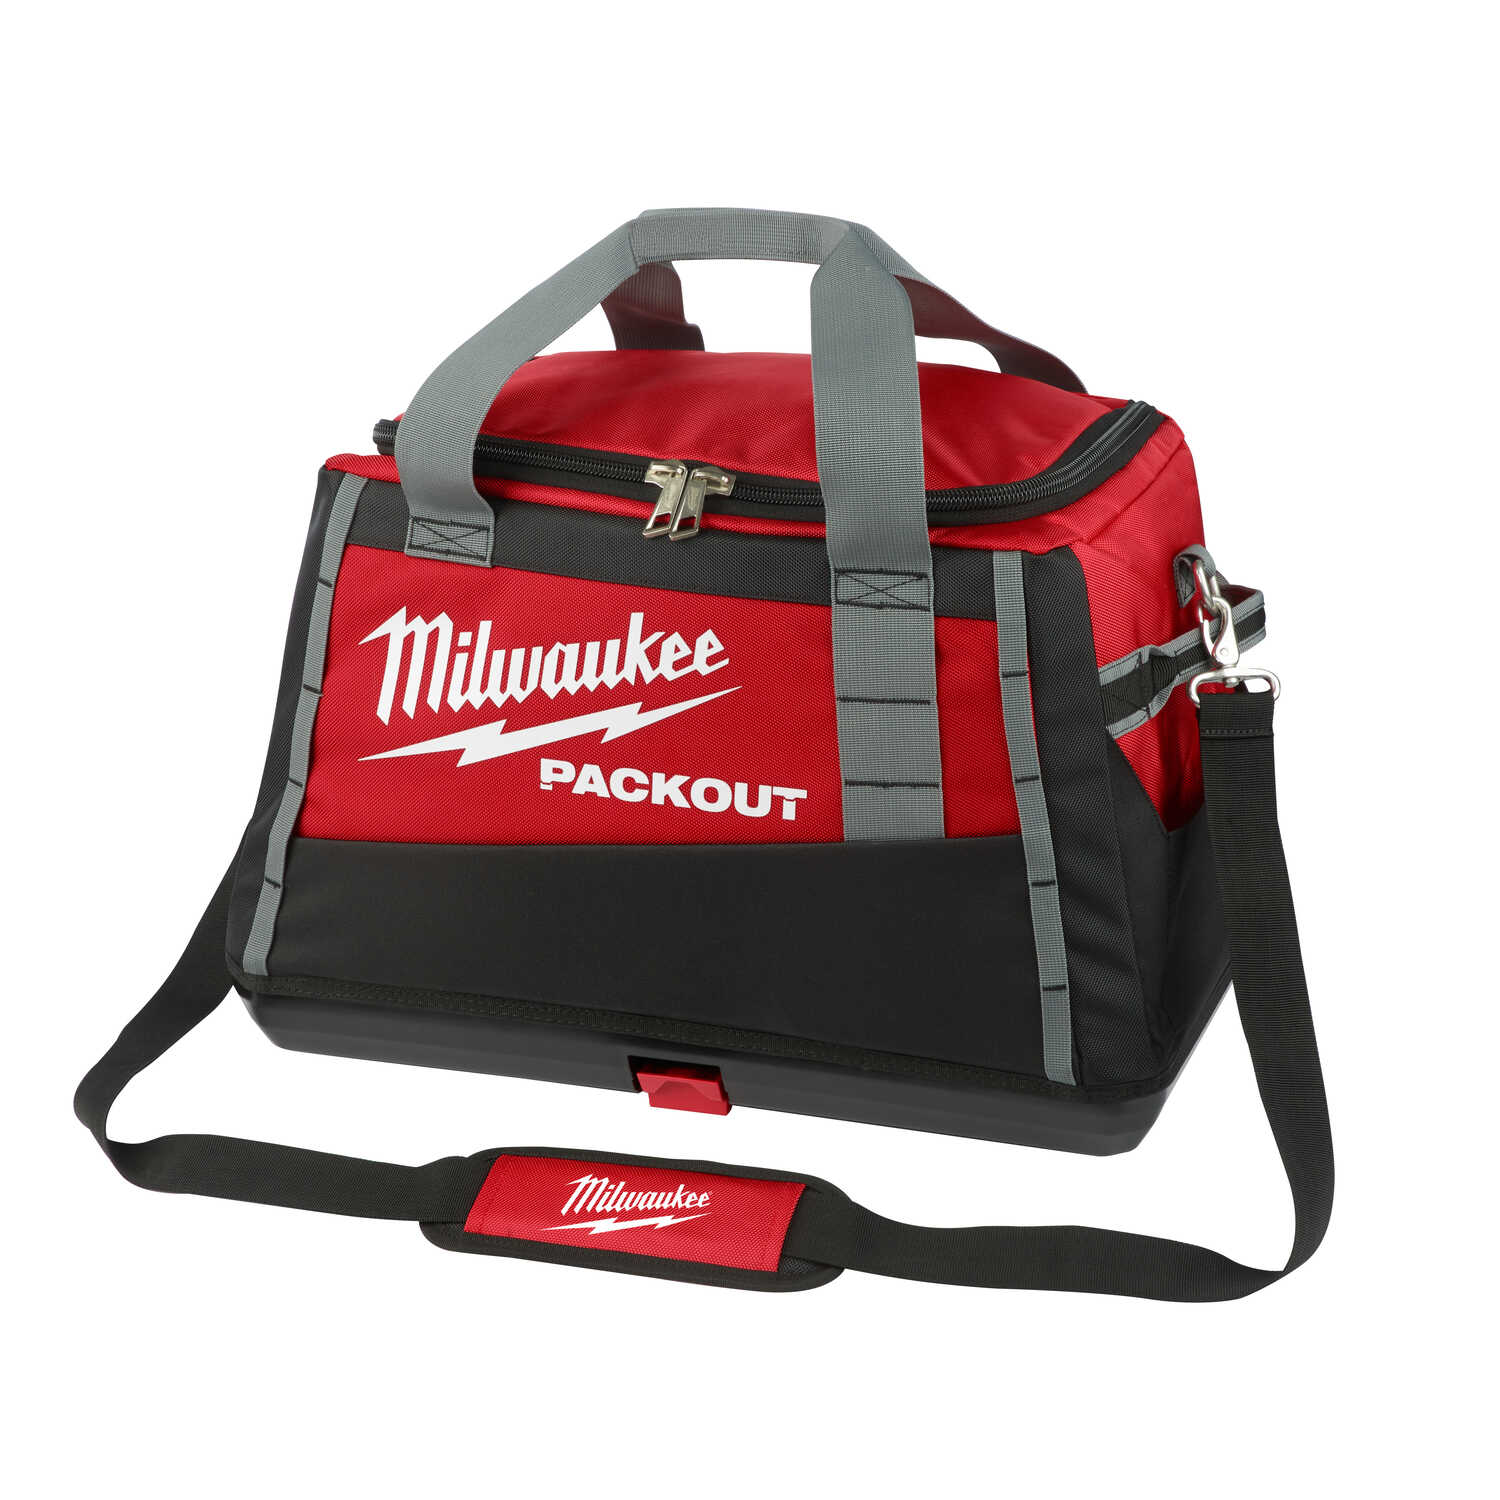 Milwaukee PACKOUT 20 in  W x 13 8 in  H Ballistic Nylon Tool Bag 3